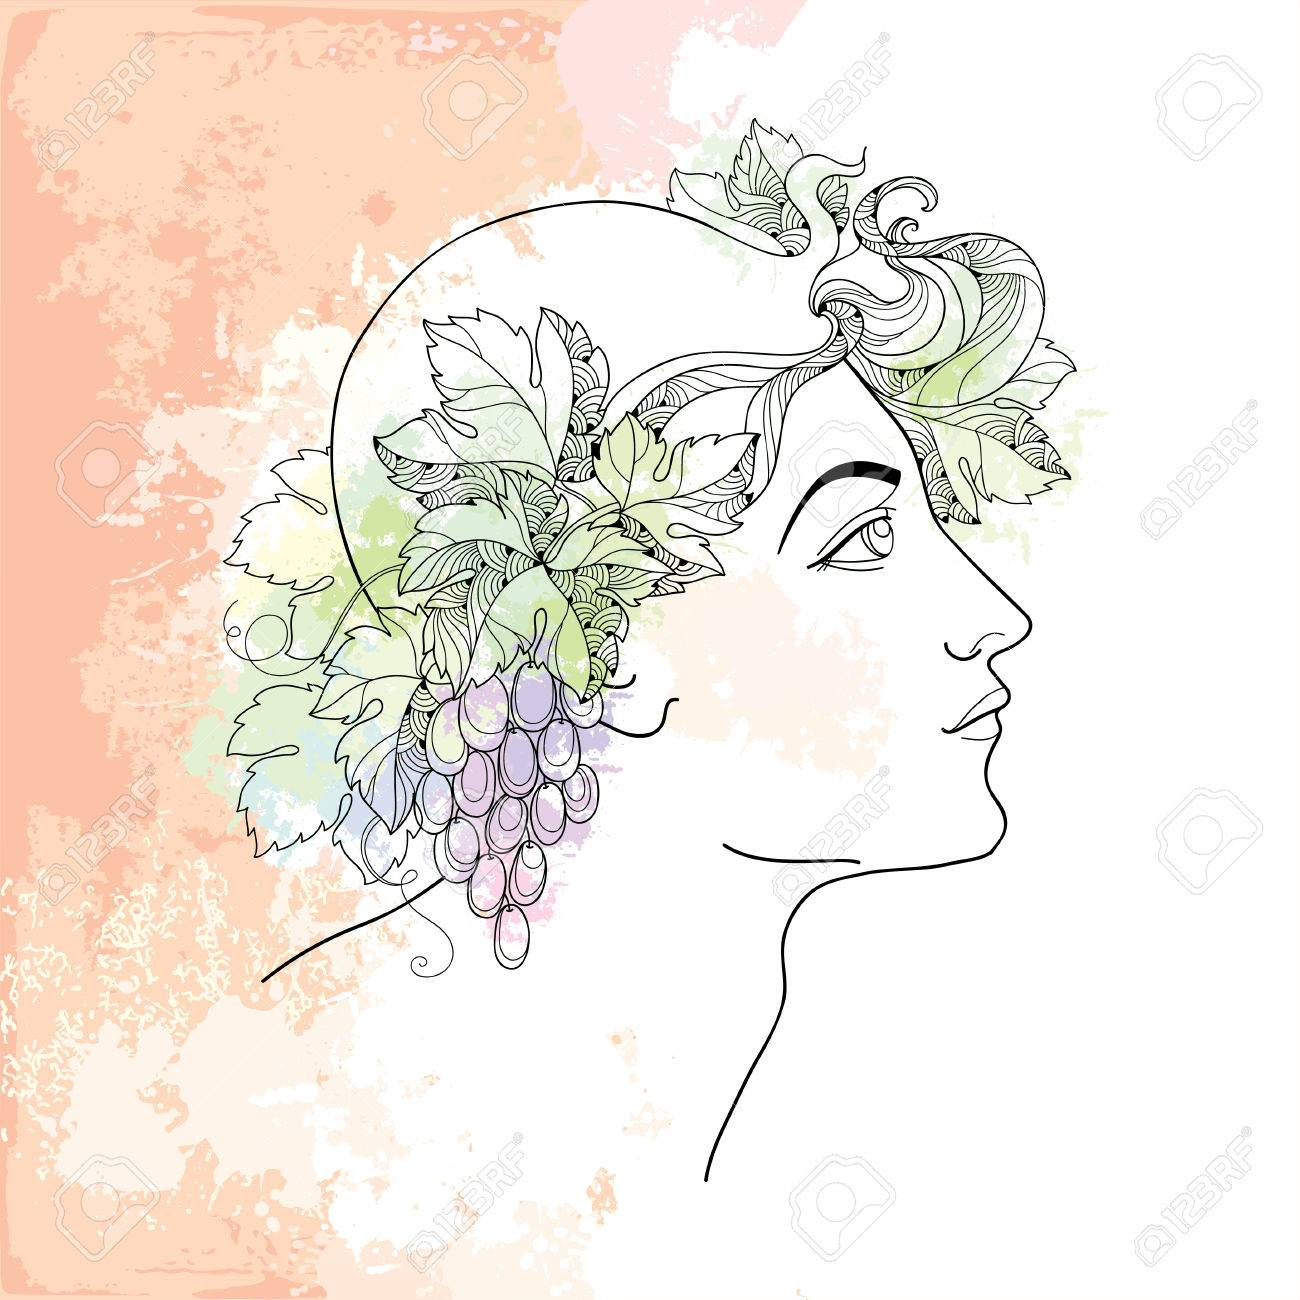 Mythological dionysus or bacchus in contour style on the beige mythological dionysus or bacchus in contour style on the beige background with blots in pastel colors buycottarizona